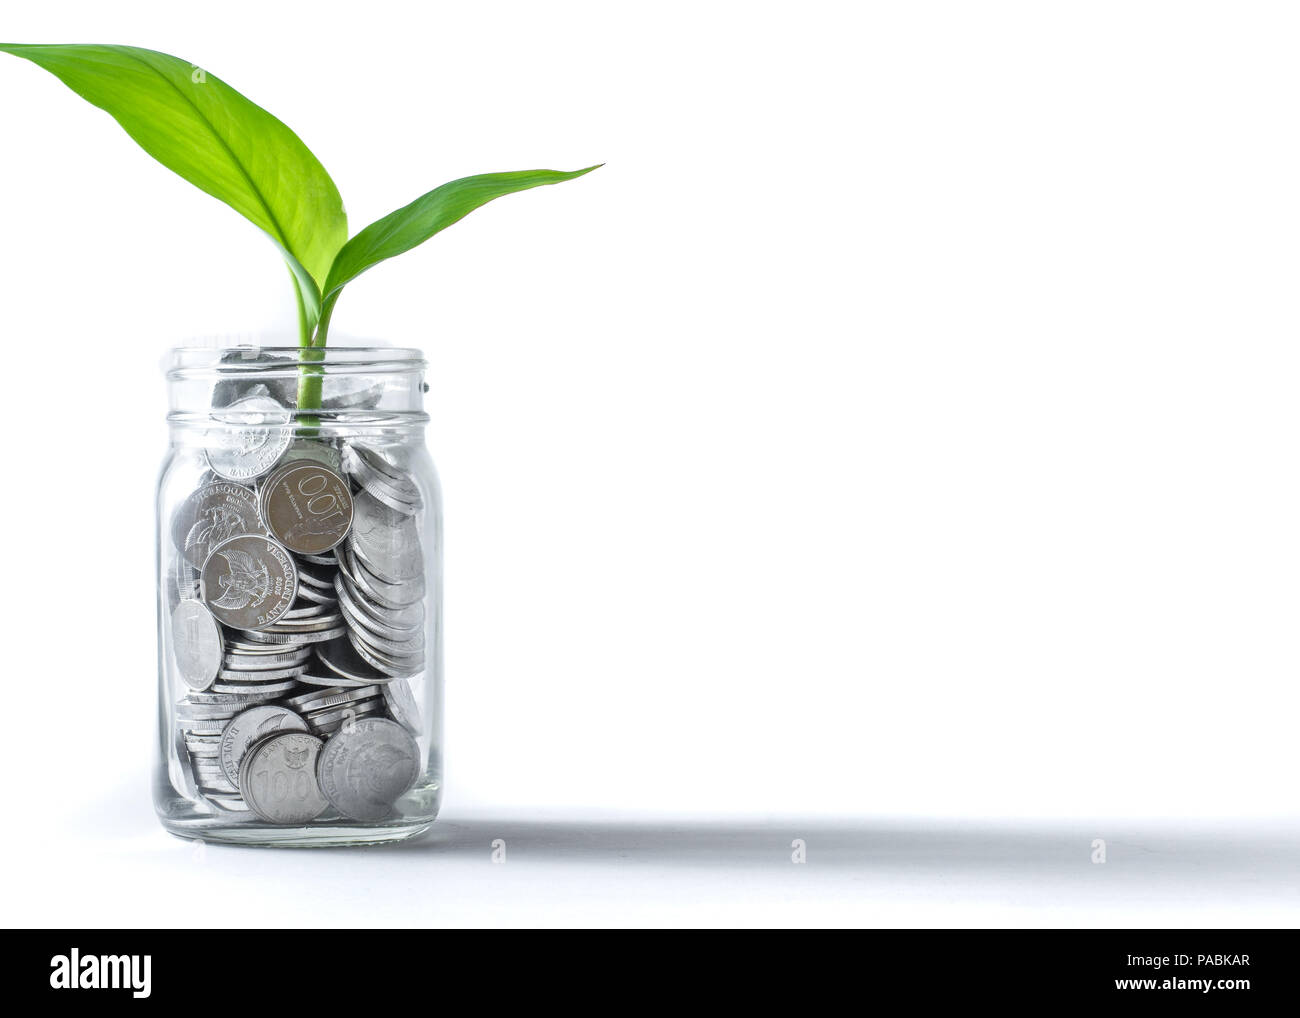 coins in a jar with plant growing suggests investment, wealth, savings & growth. - Stock Image